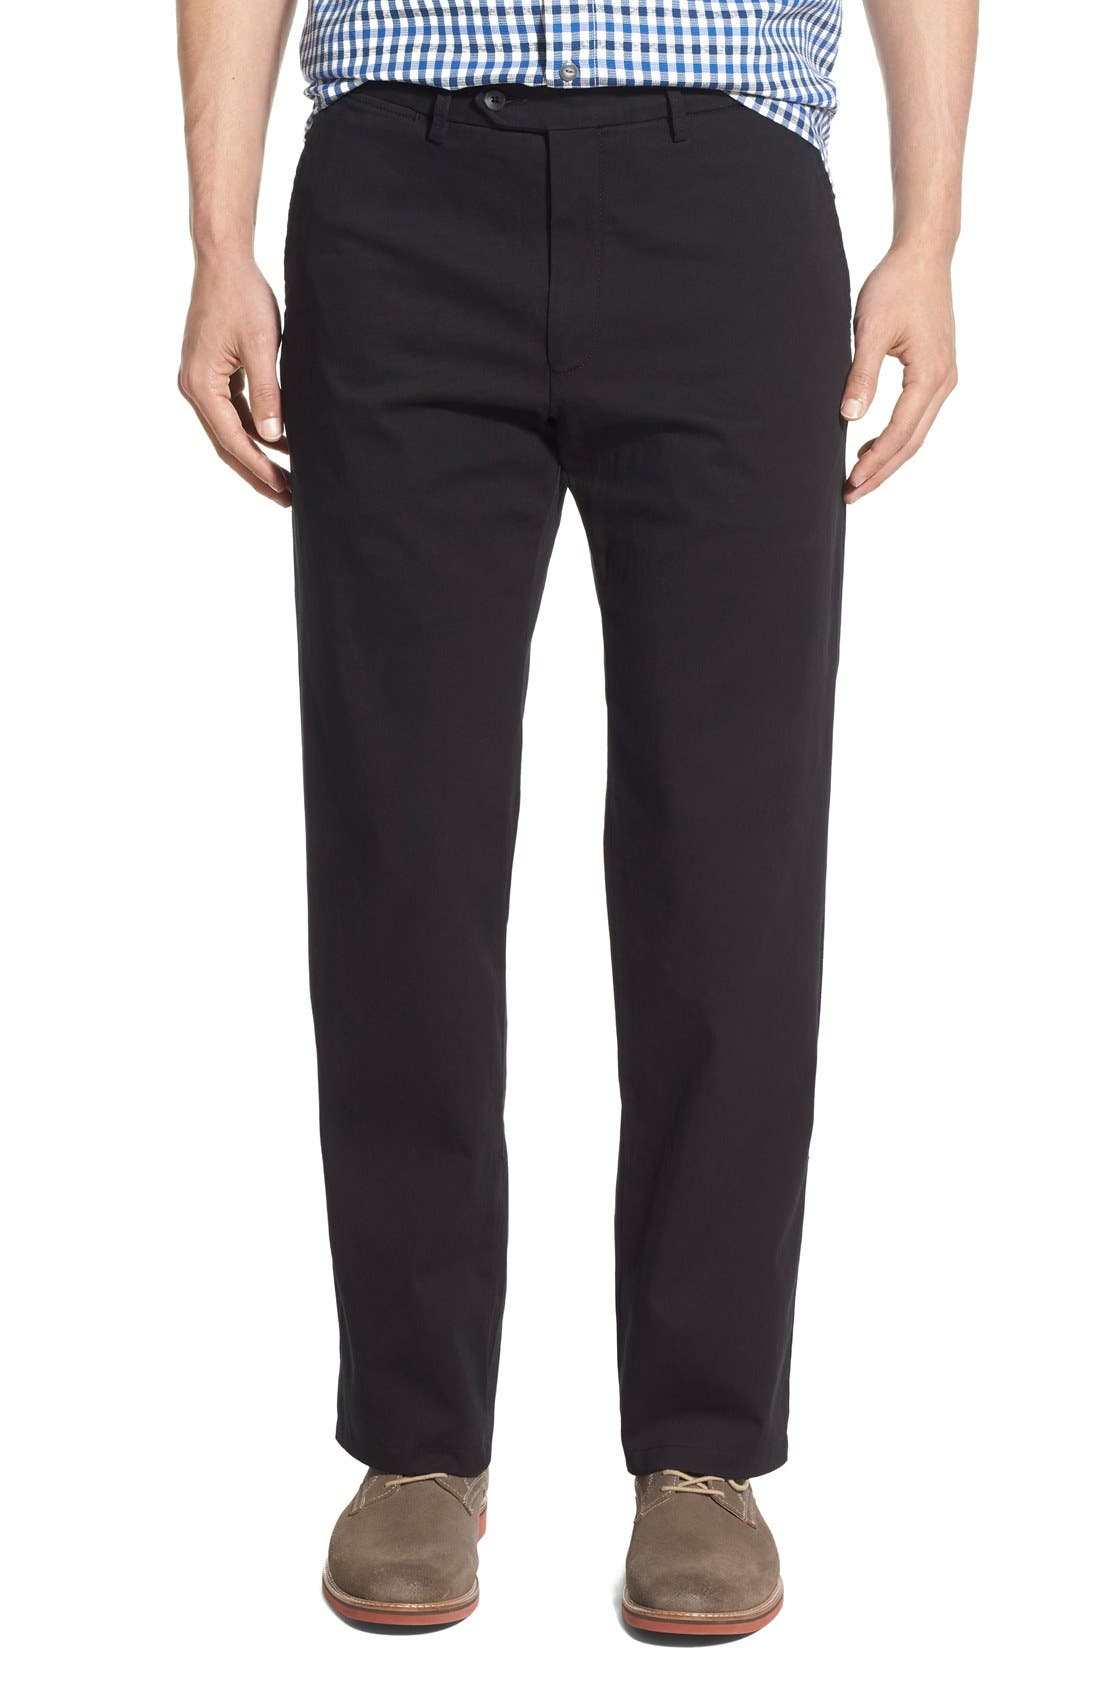 Mansfield Pima Cotton Pant,                         Main,                         color, 001